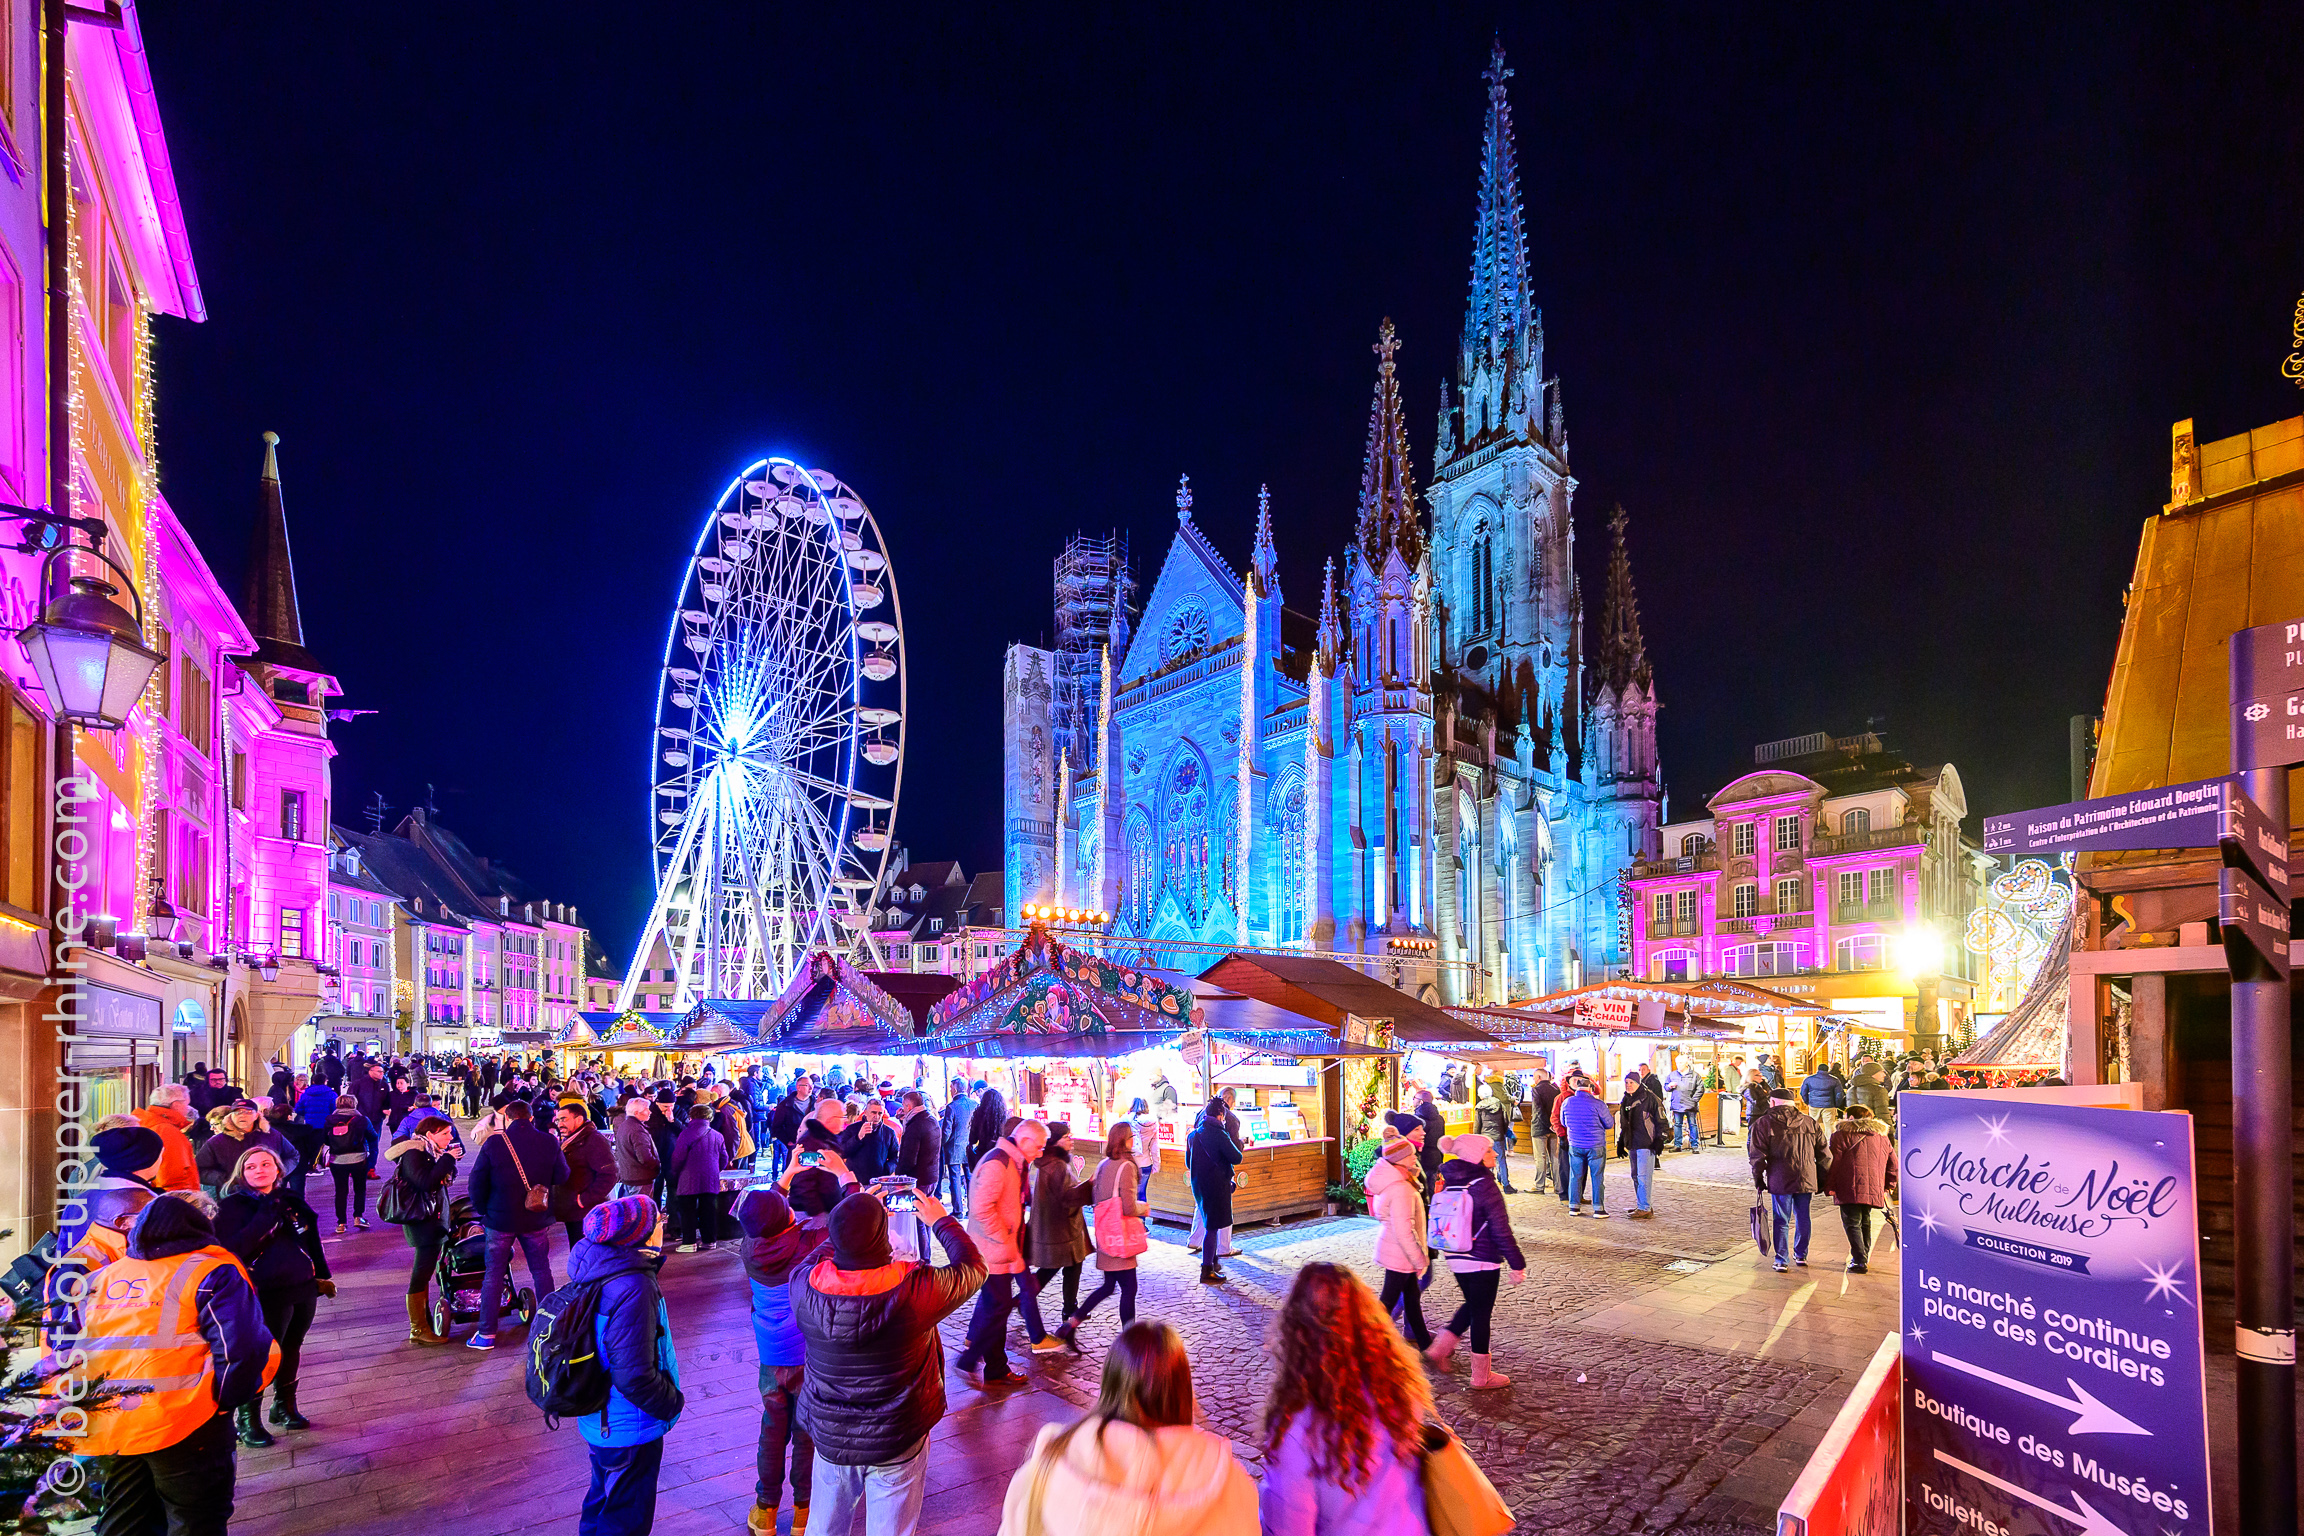 Christmas Market on South Alsace